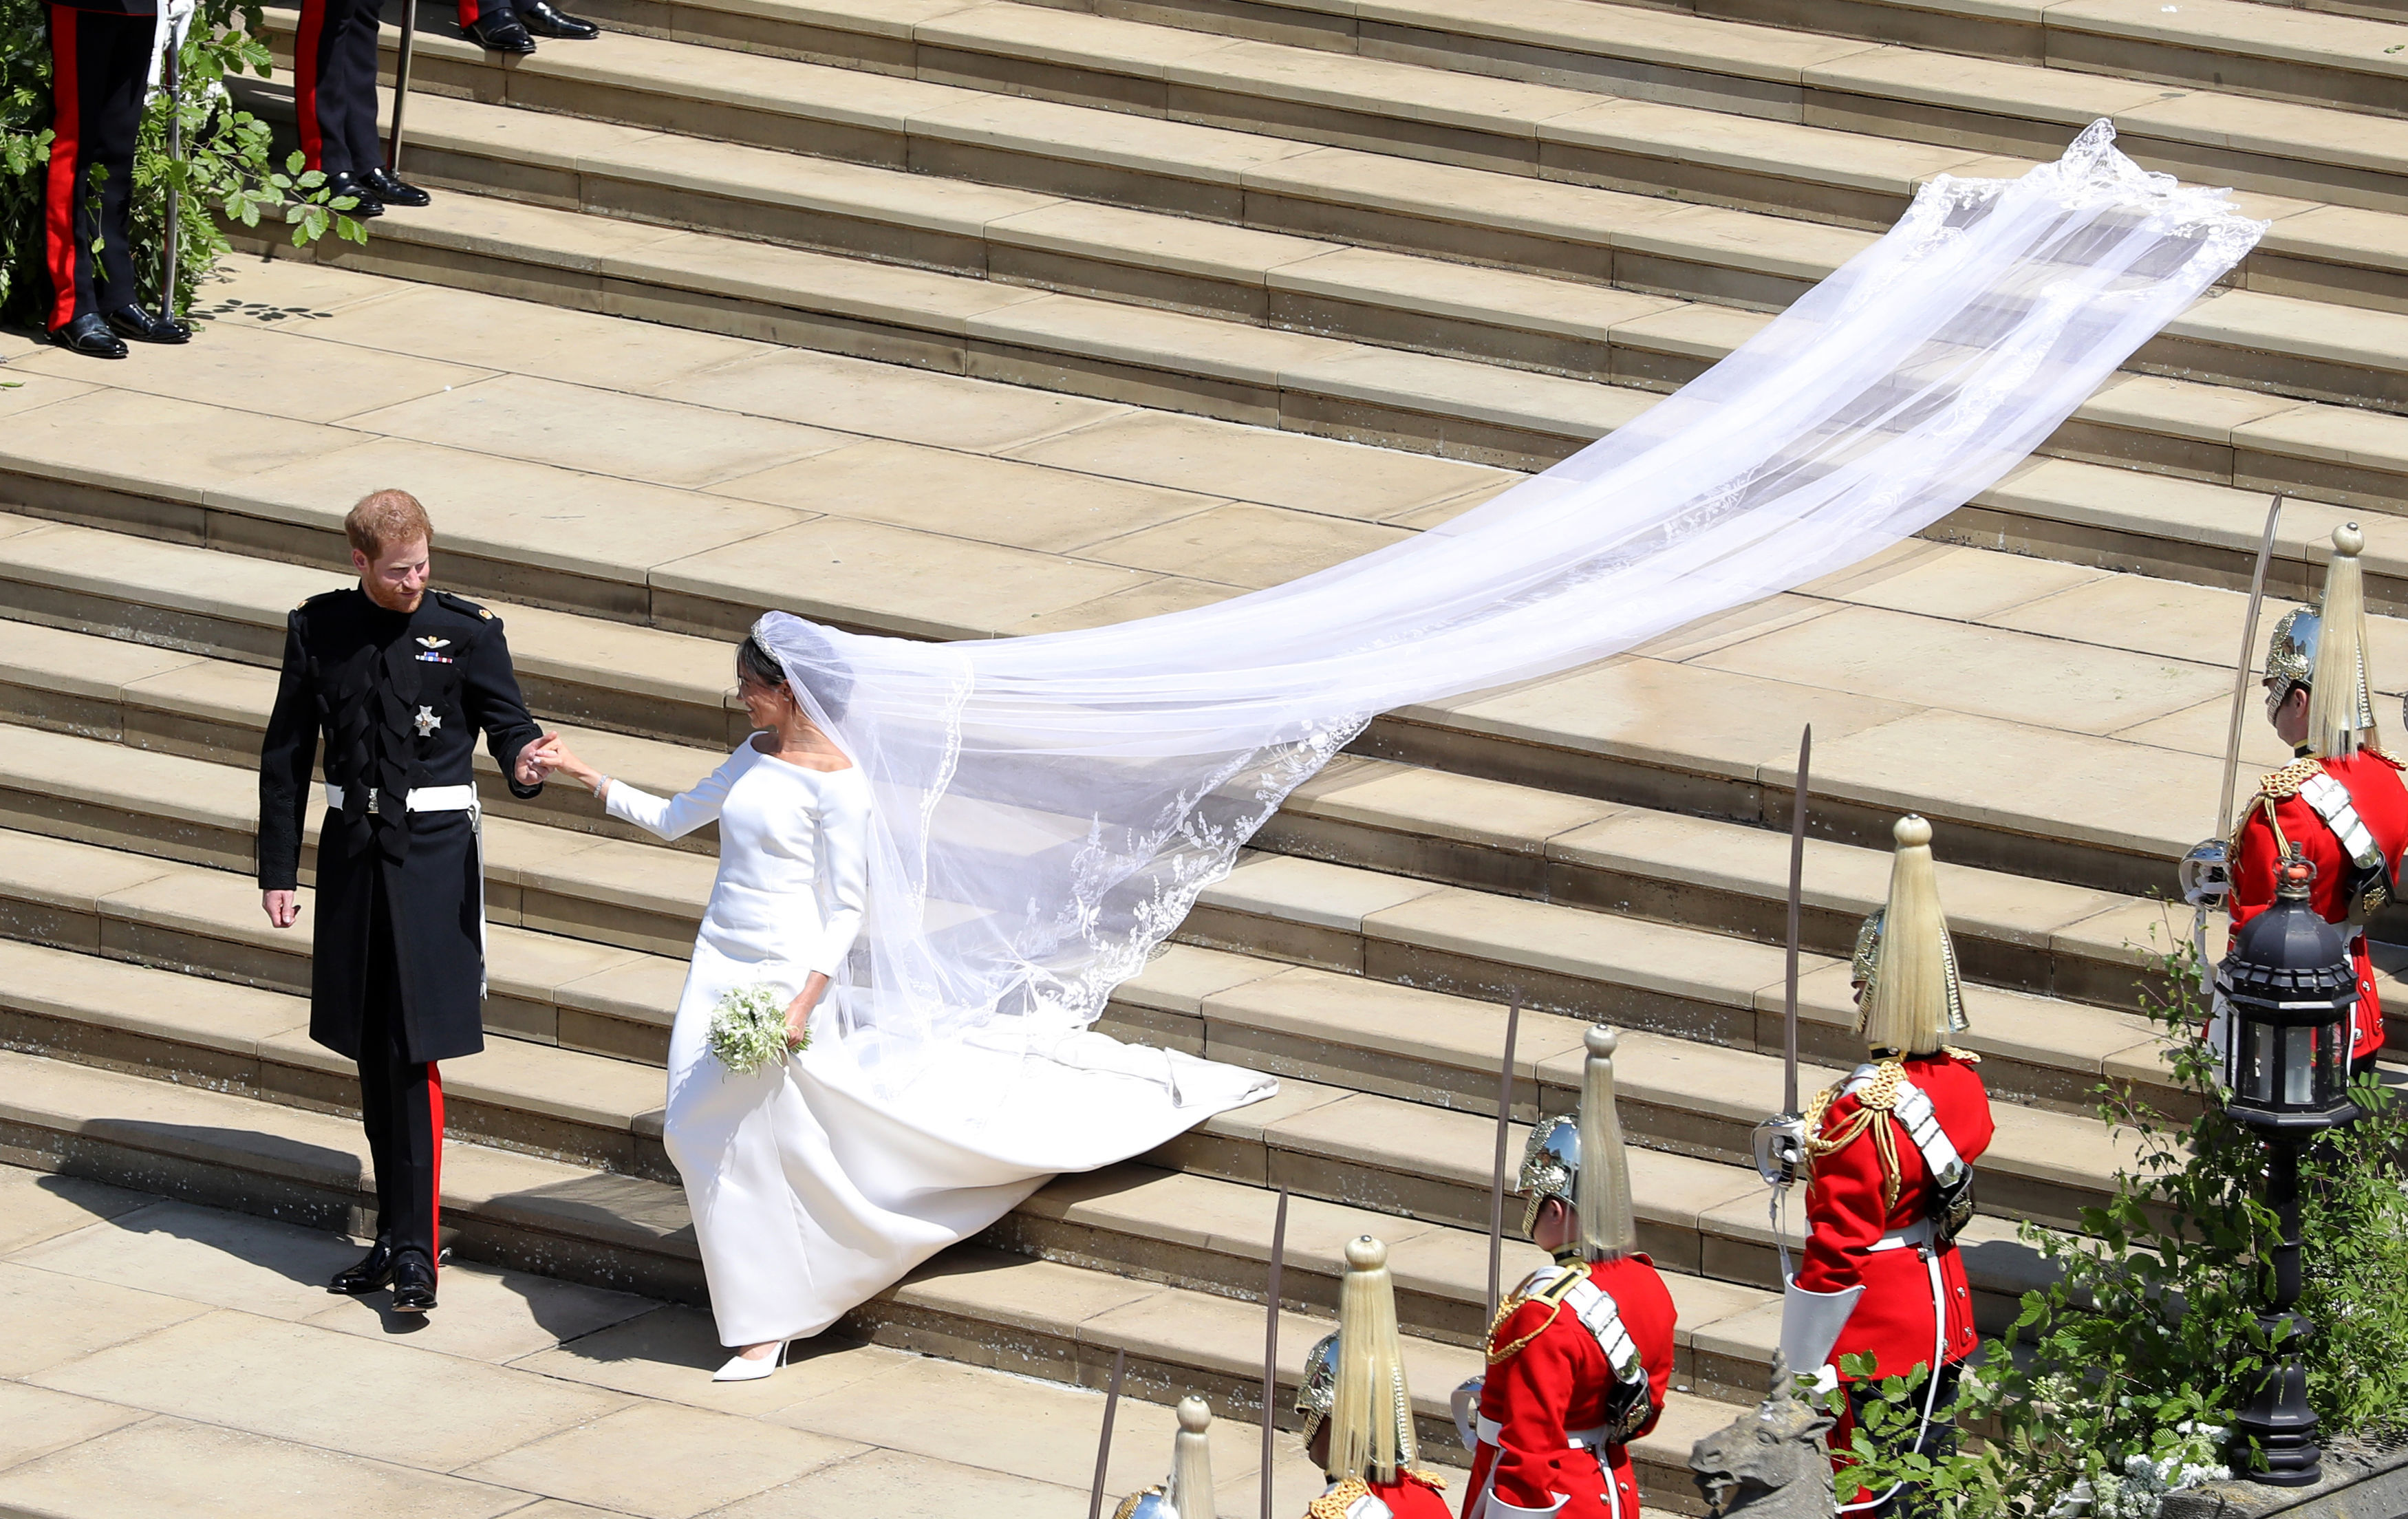 Prince Harry, Duke of Sussex and The Duchess of Sussex leave St George's Chapel, Windsor Castle after their wedding ceremony on May 19, 2018, in Windsor, England. (Getty Images)